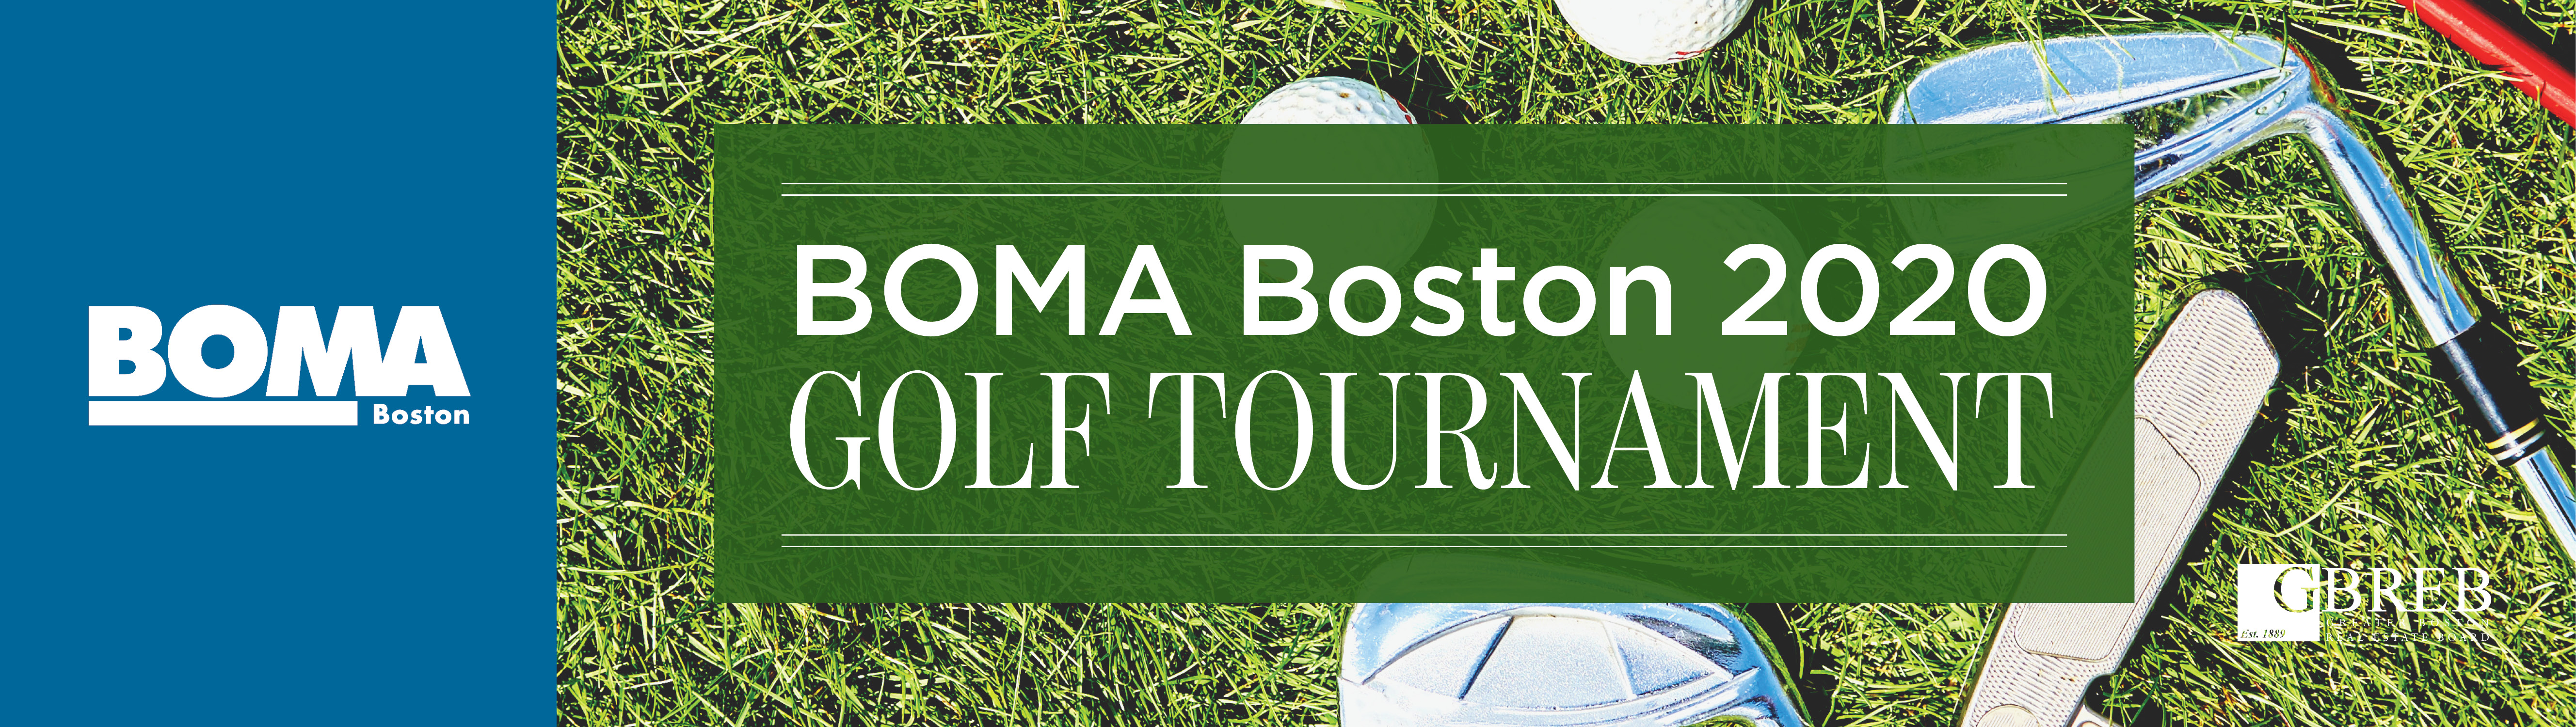 BOMA Golf Tournament - Sold out!